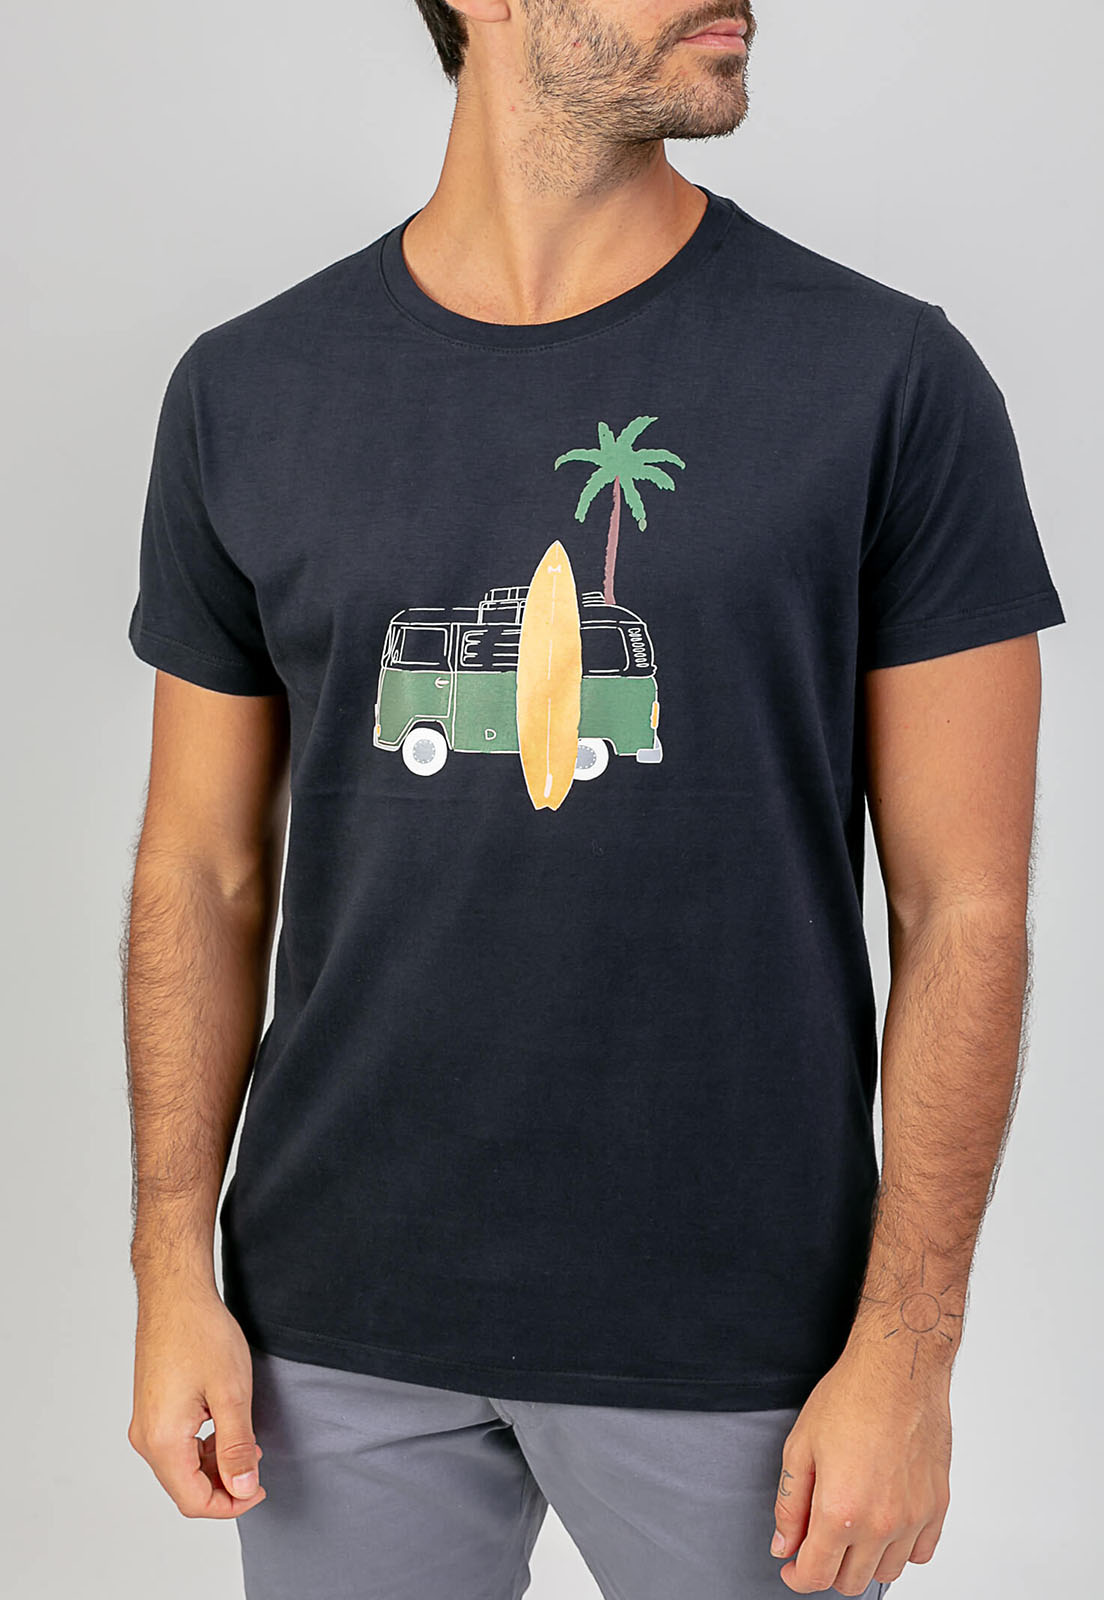 T-shirt Surf Trip melty  - melty surf & Co.